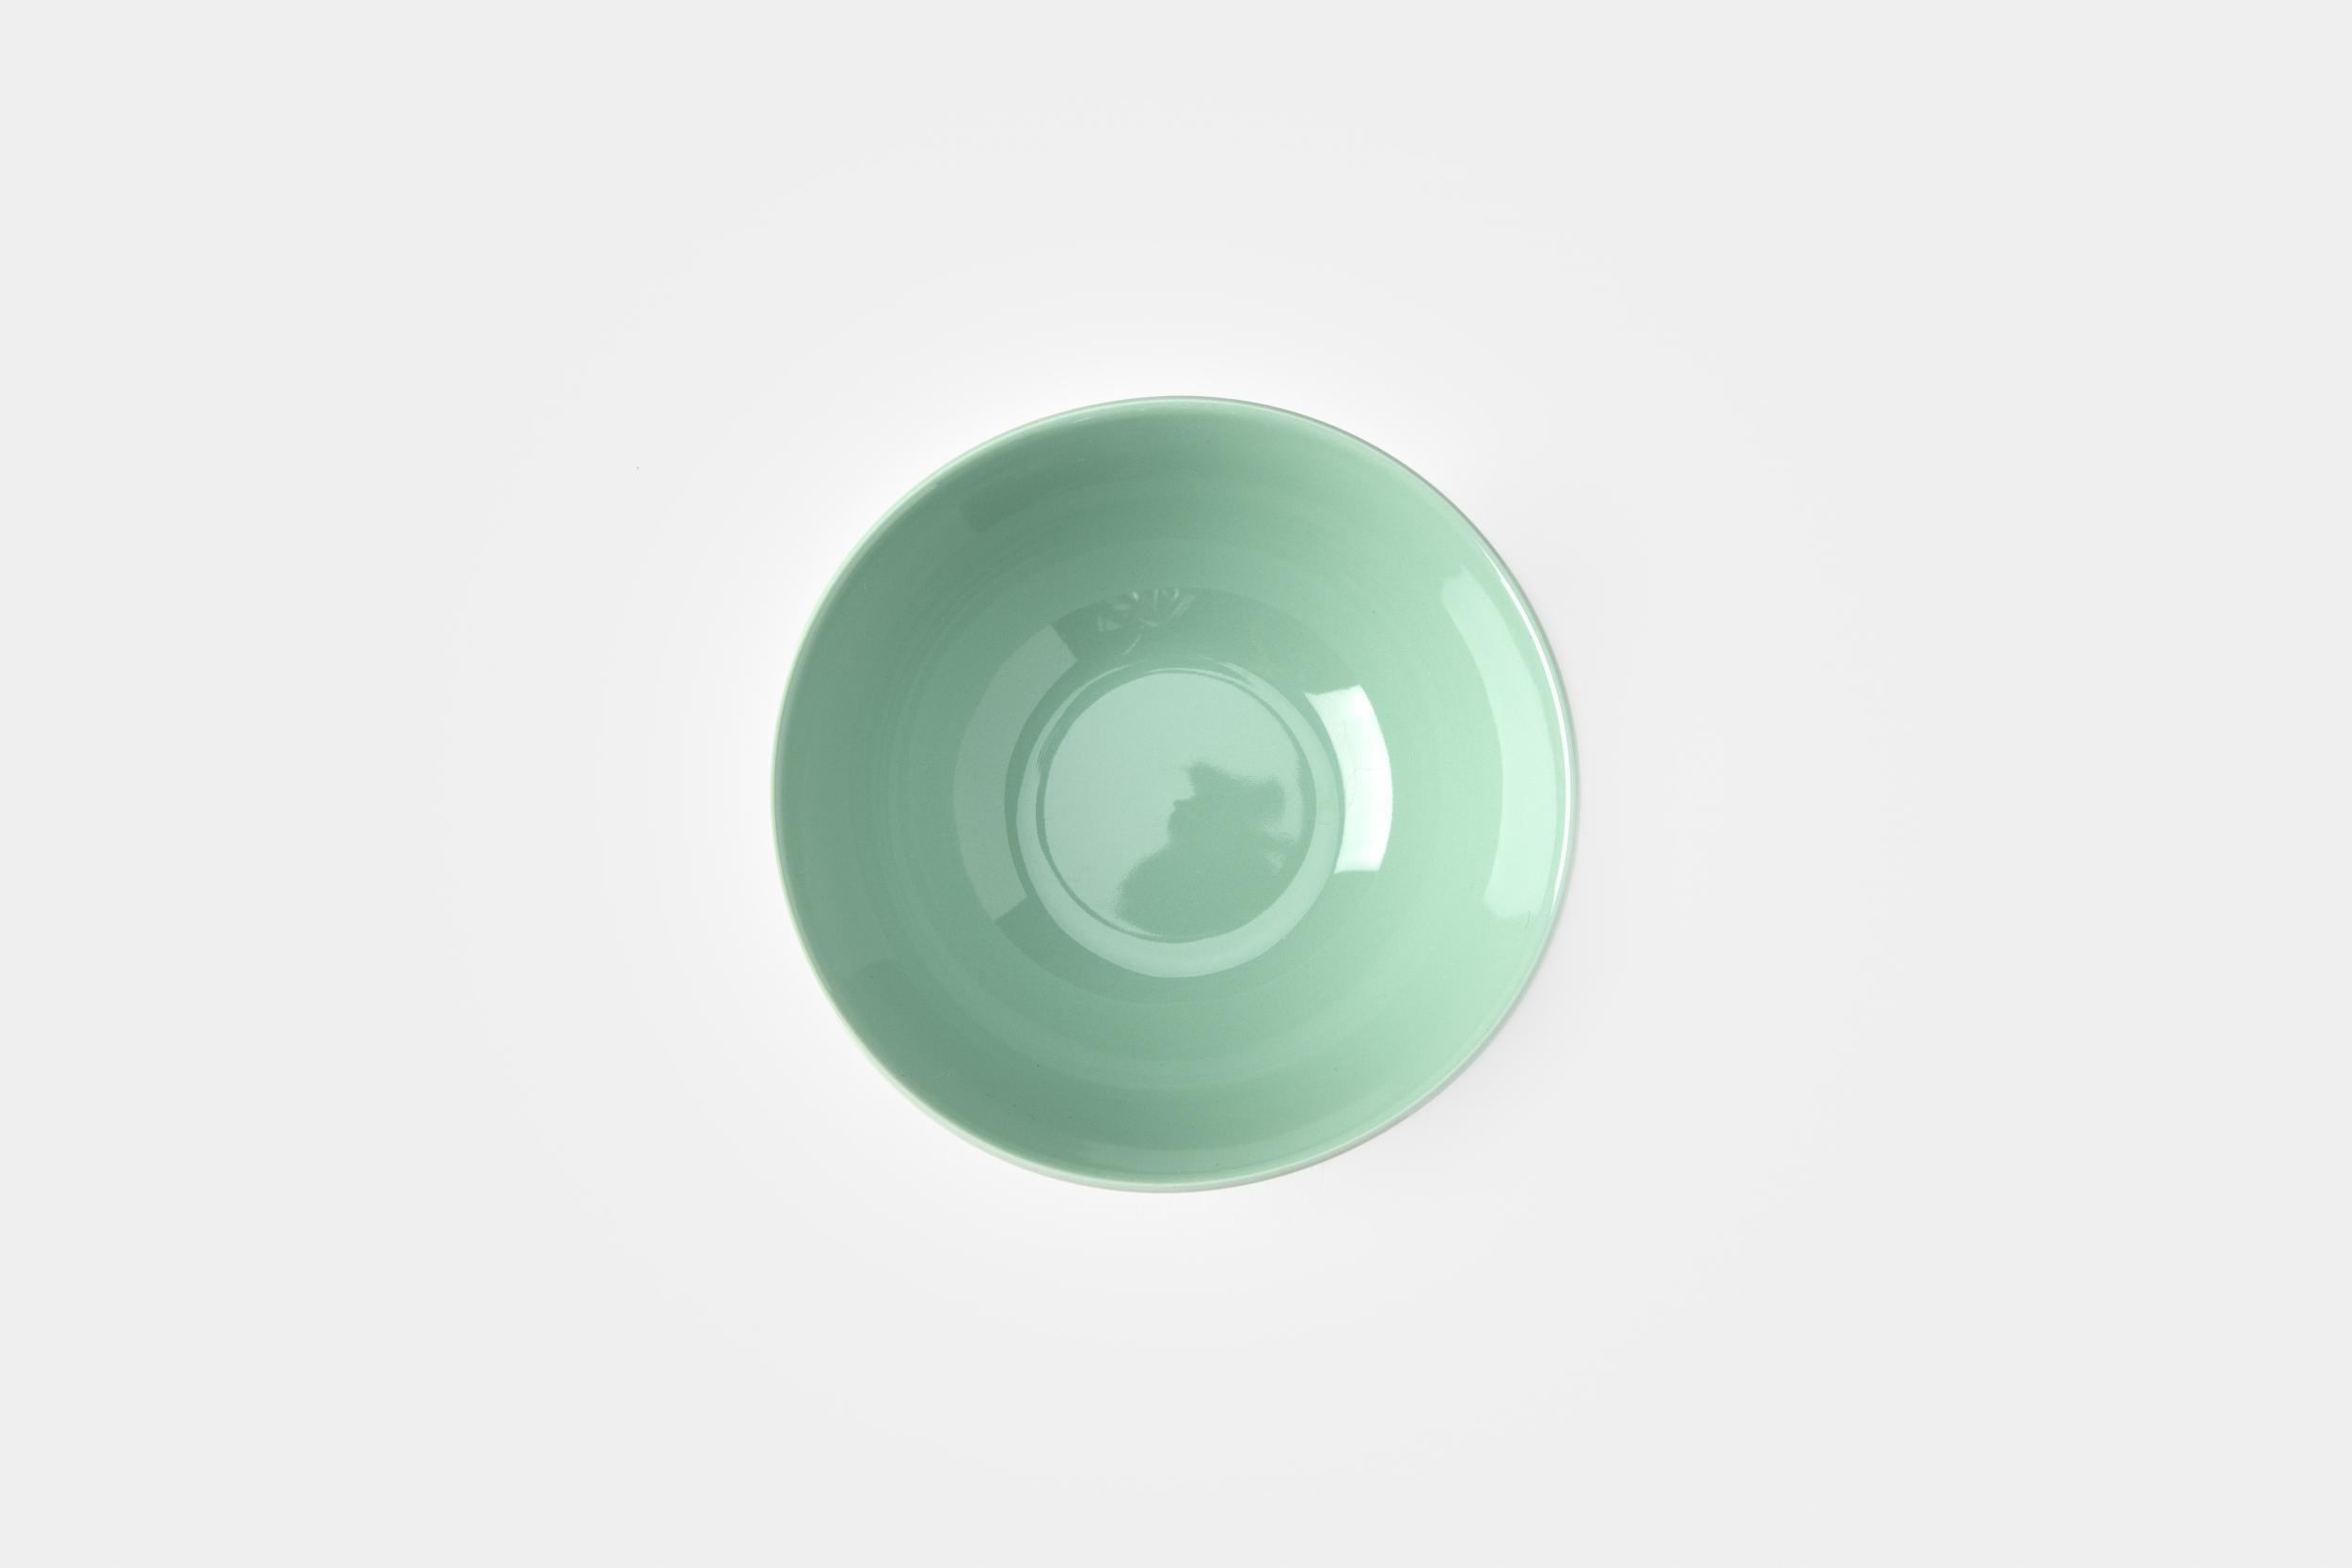 Mint green bowl - Image 0